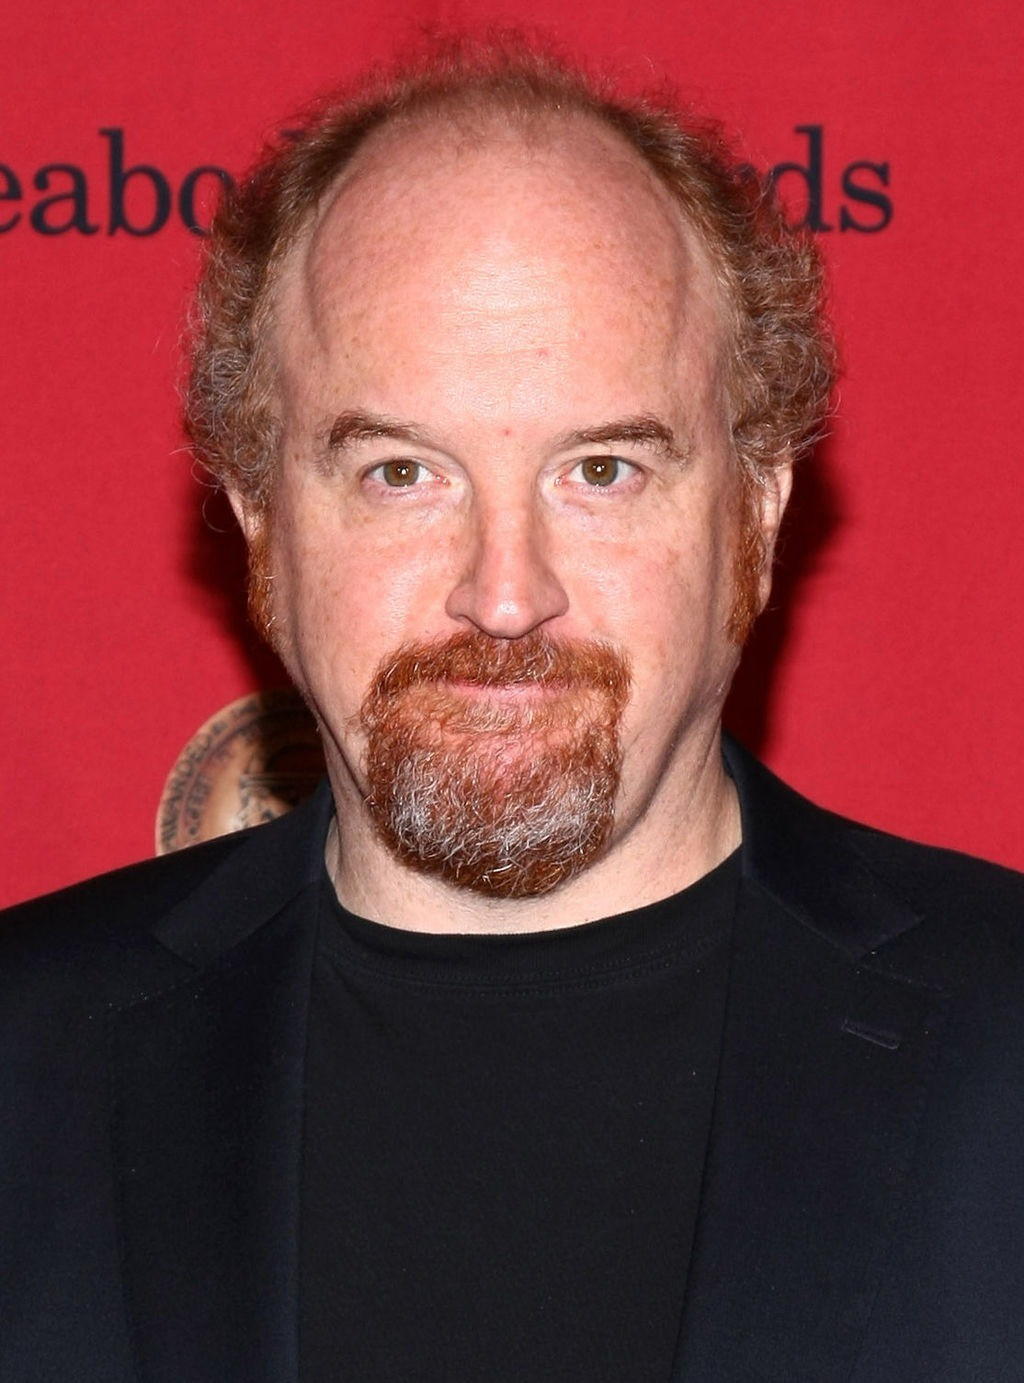 People Bemoan the Loss of Louis C.K. Without Speaking of His Victims